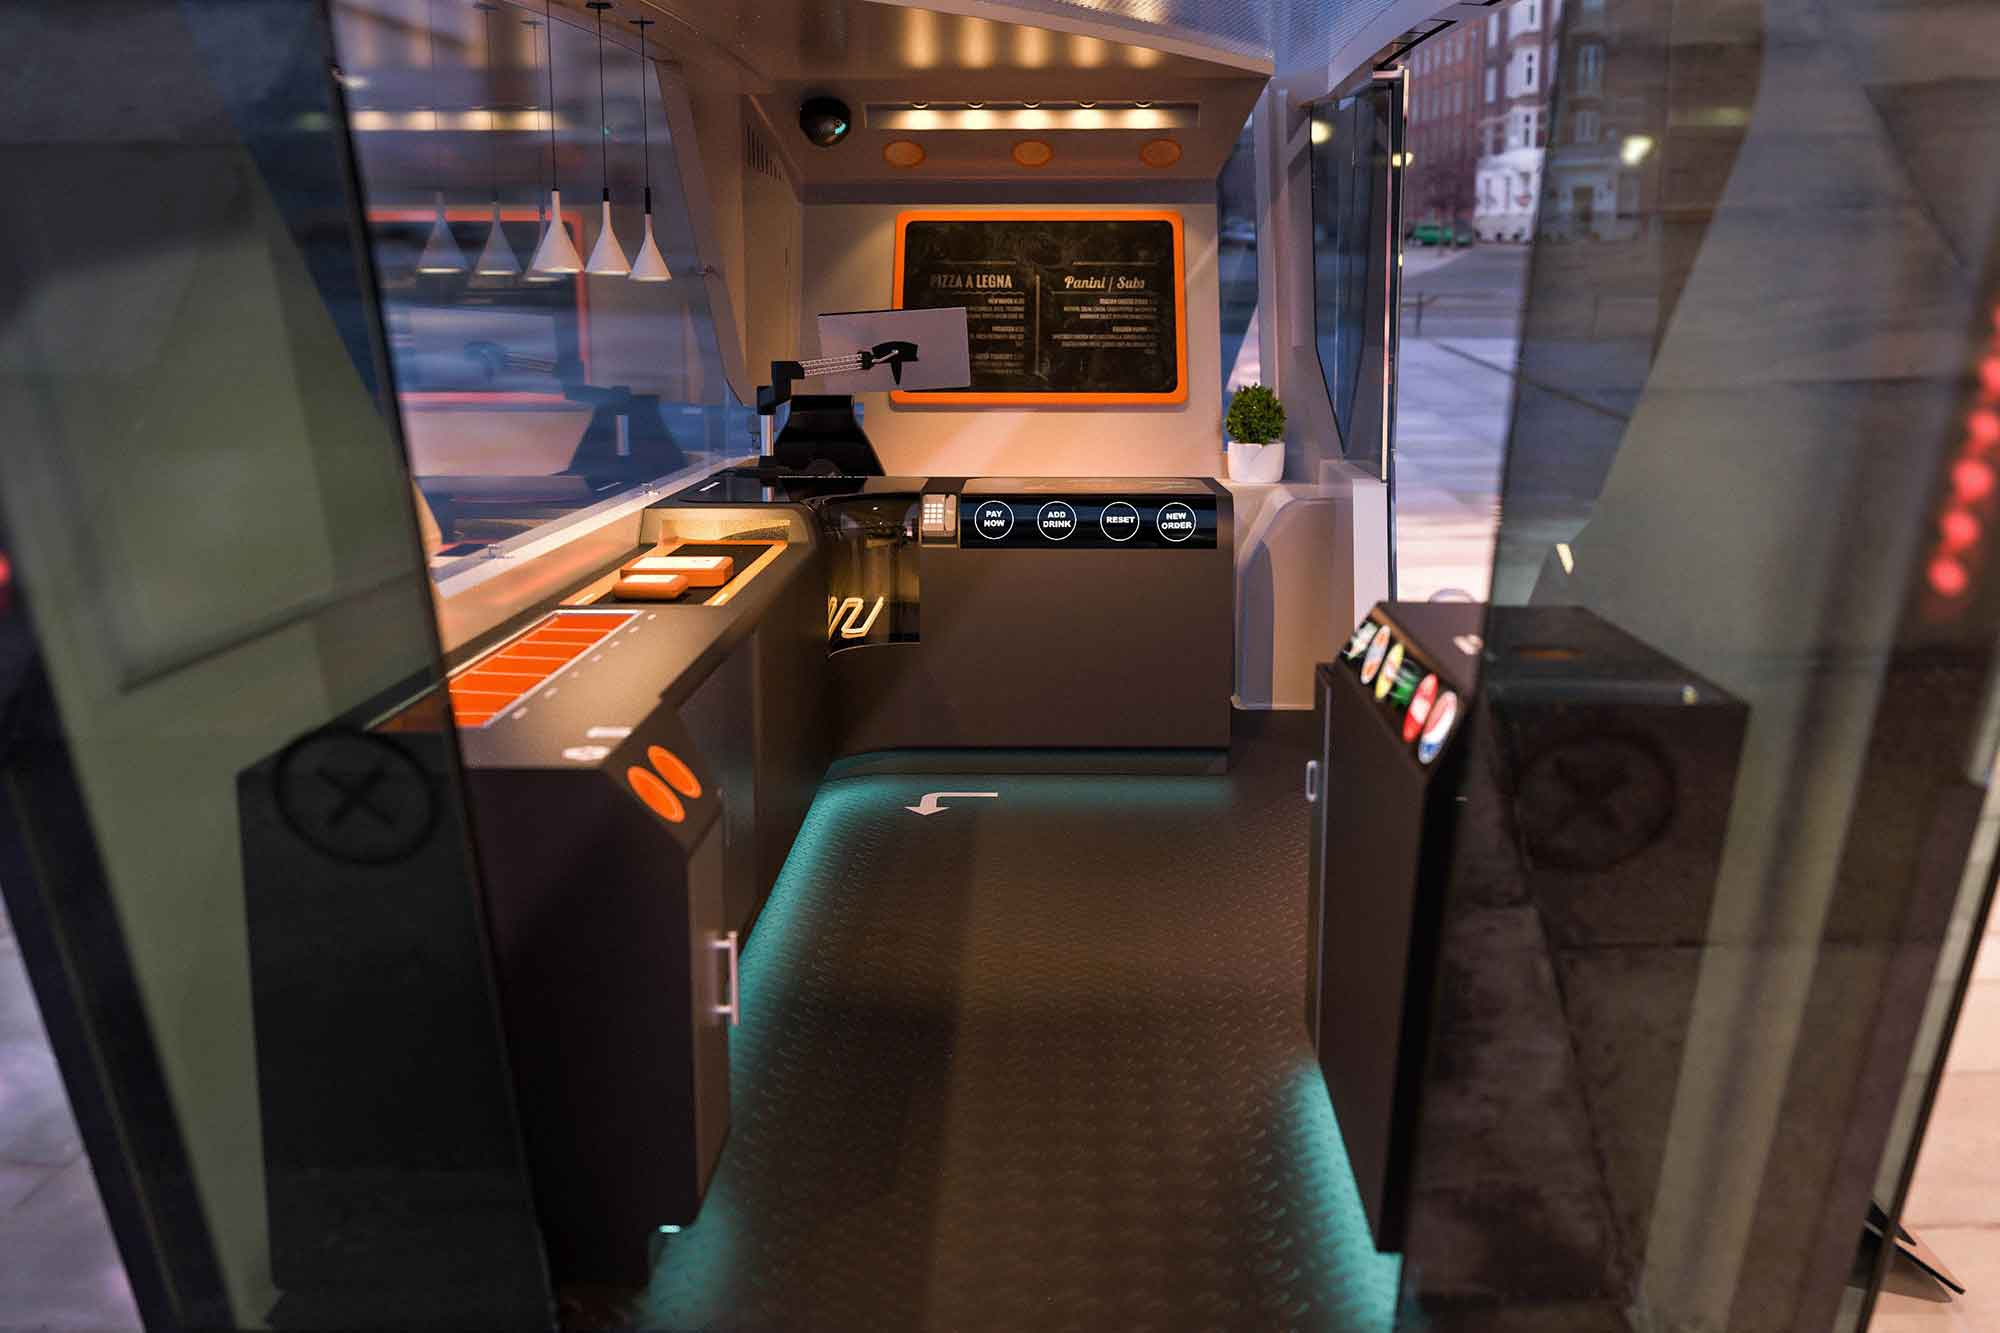 Removing industrial kitchens for under-counter food-preparing setups could open up the floor space for users. Imagine a café that pulls up to you on the street.